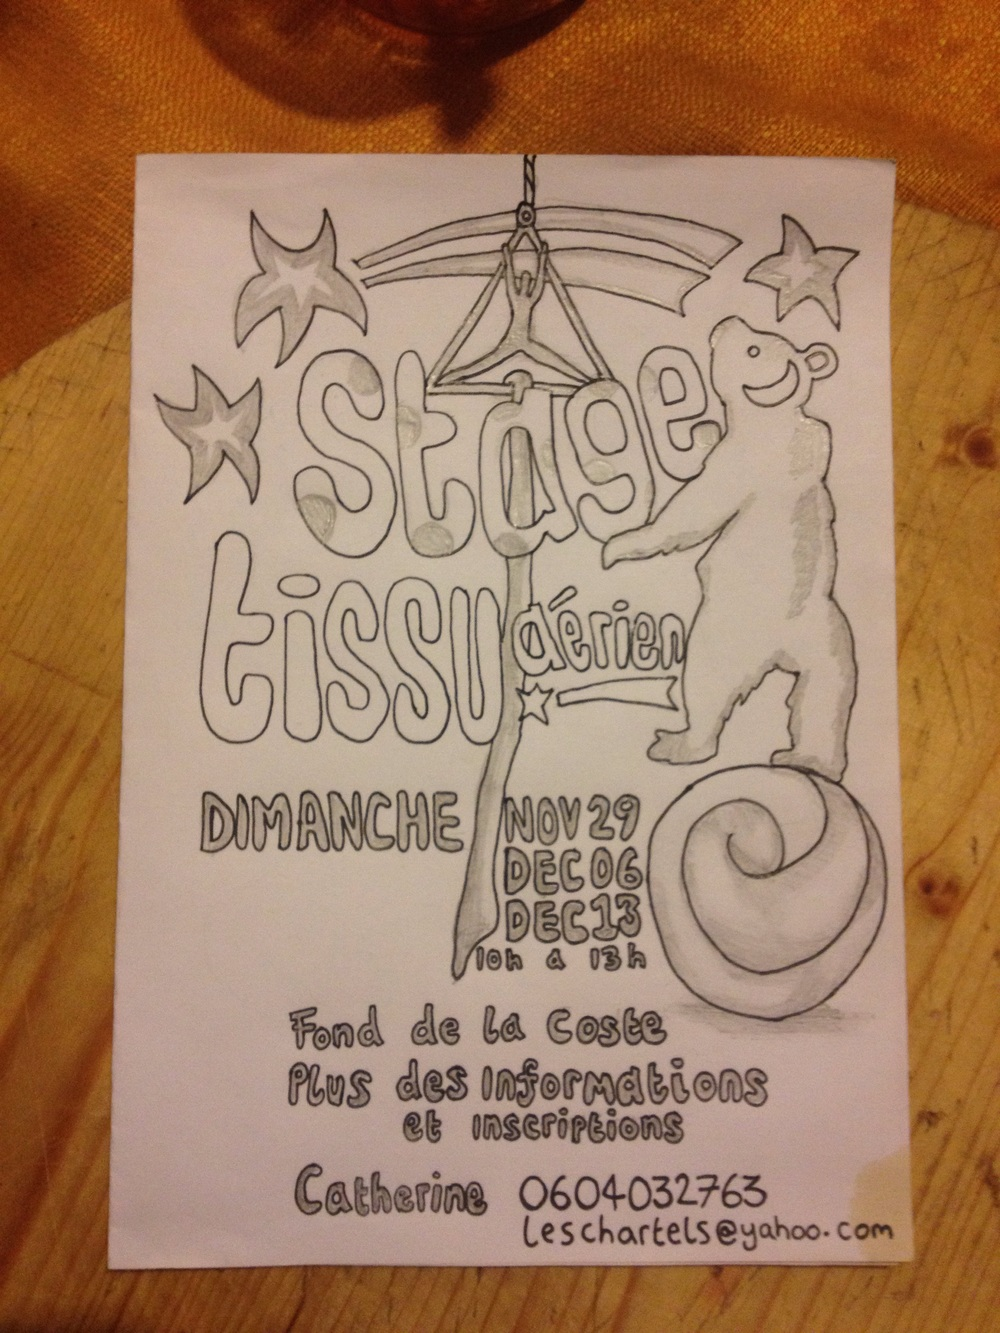 Designing a poster for Cats circus classes.